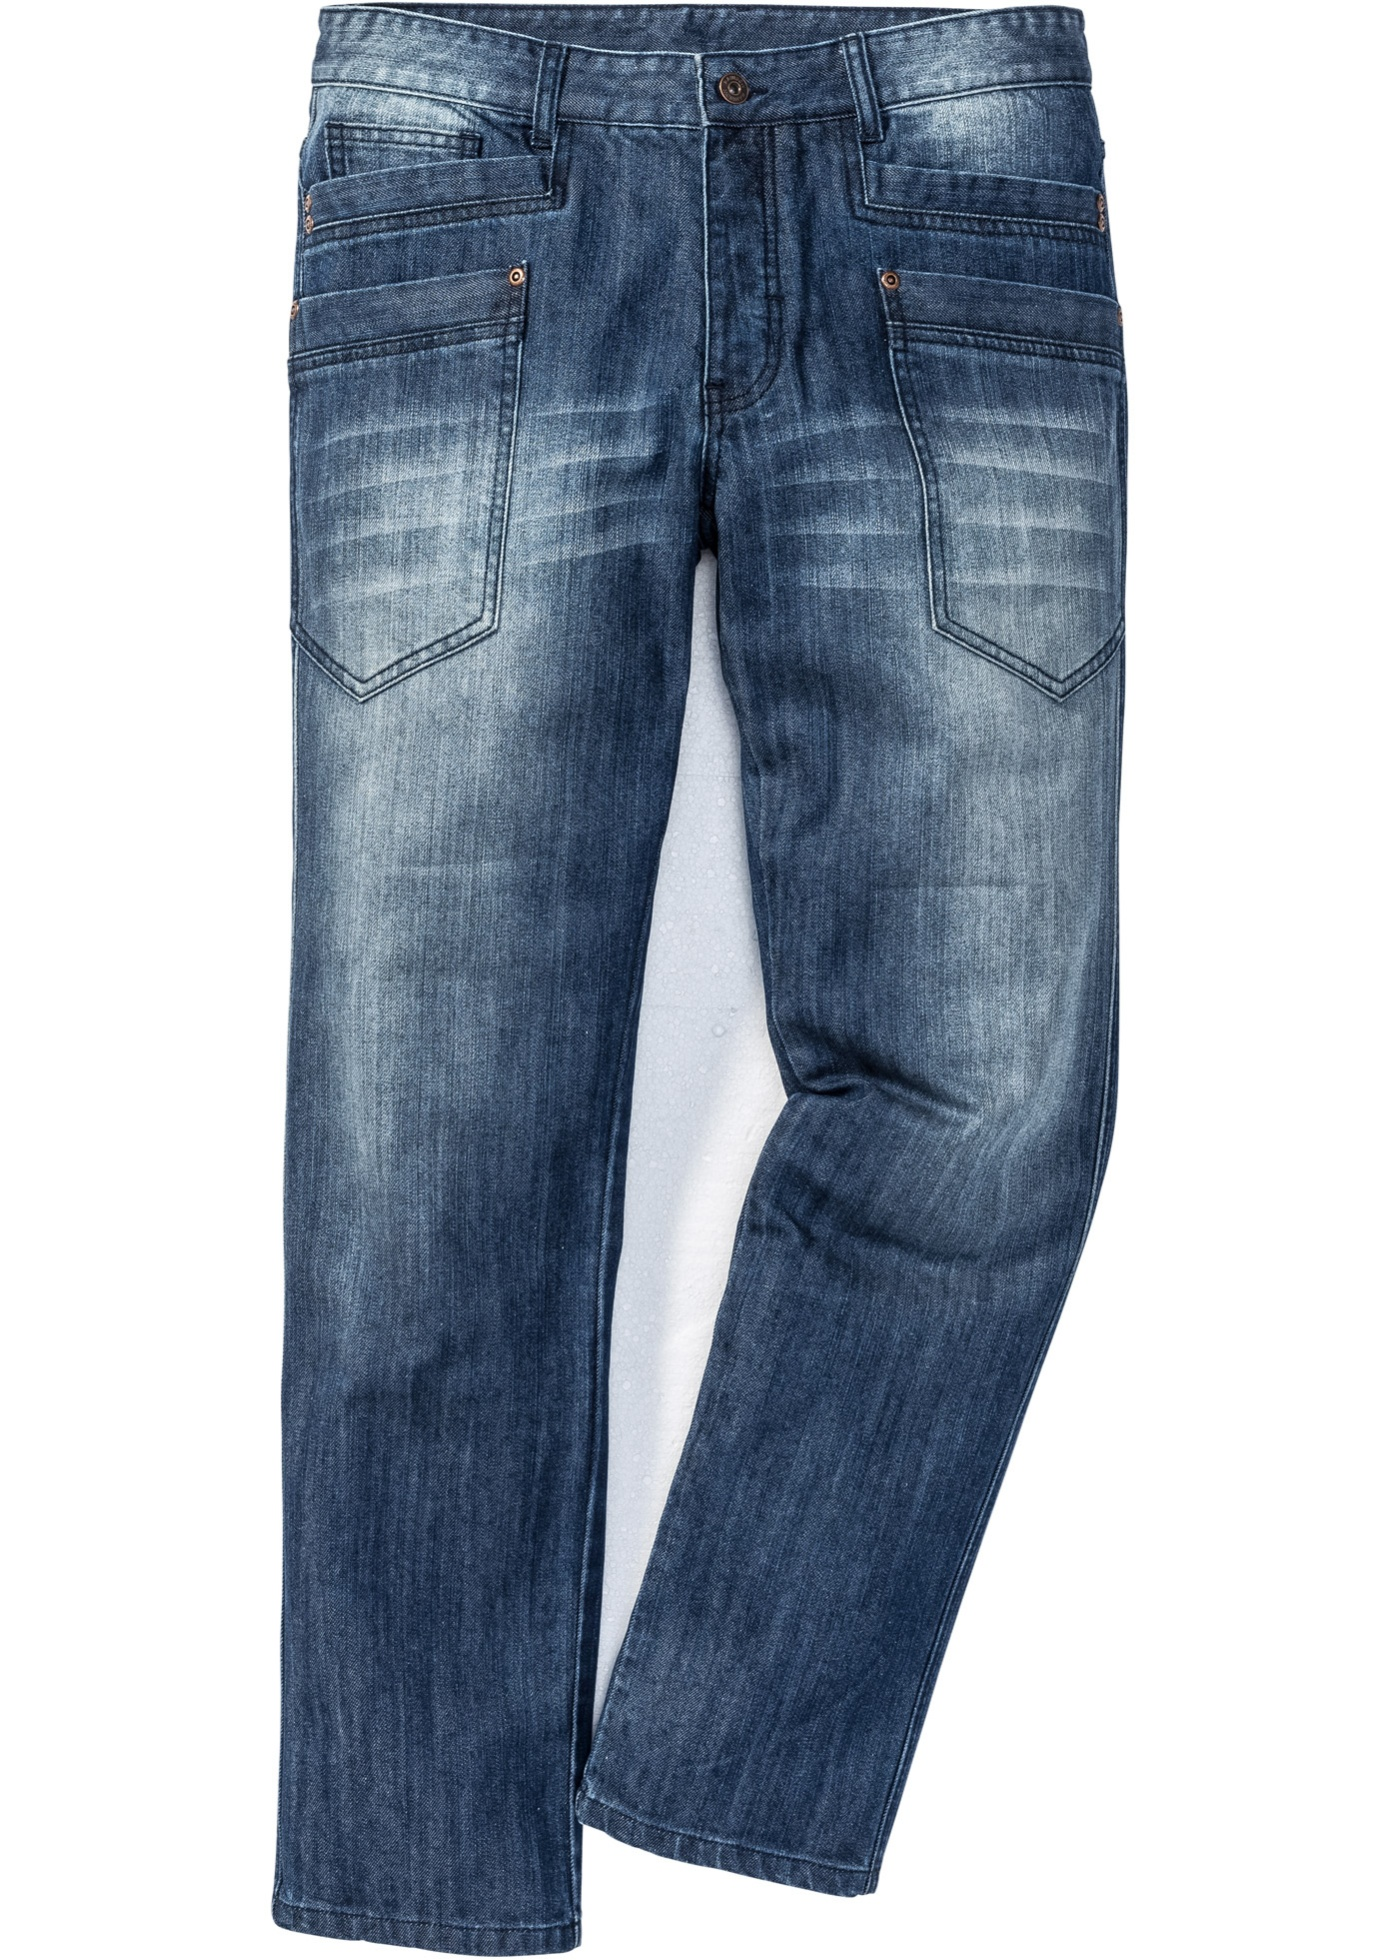 Jeans regular fit straigh